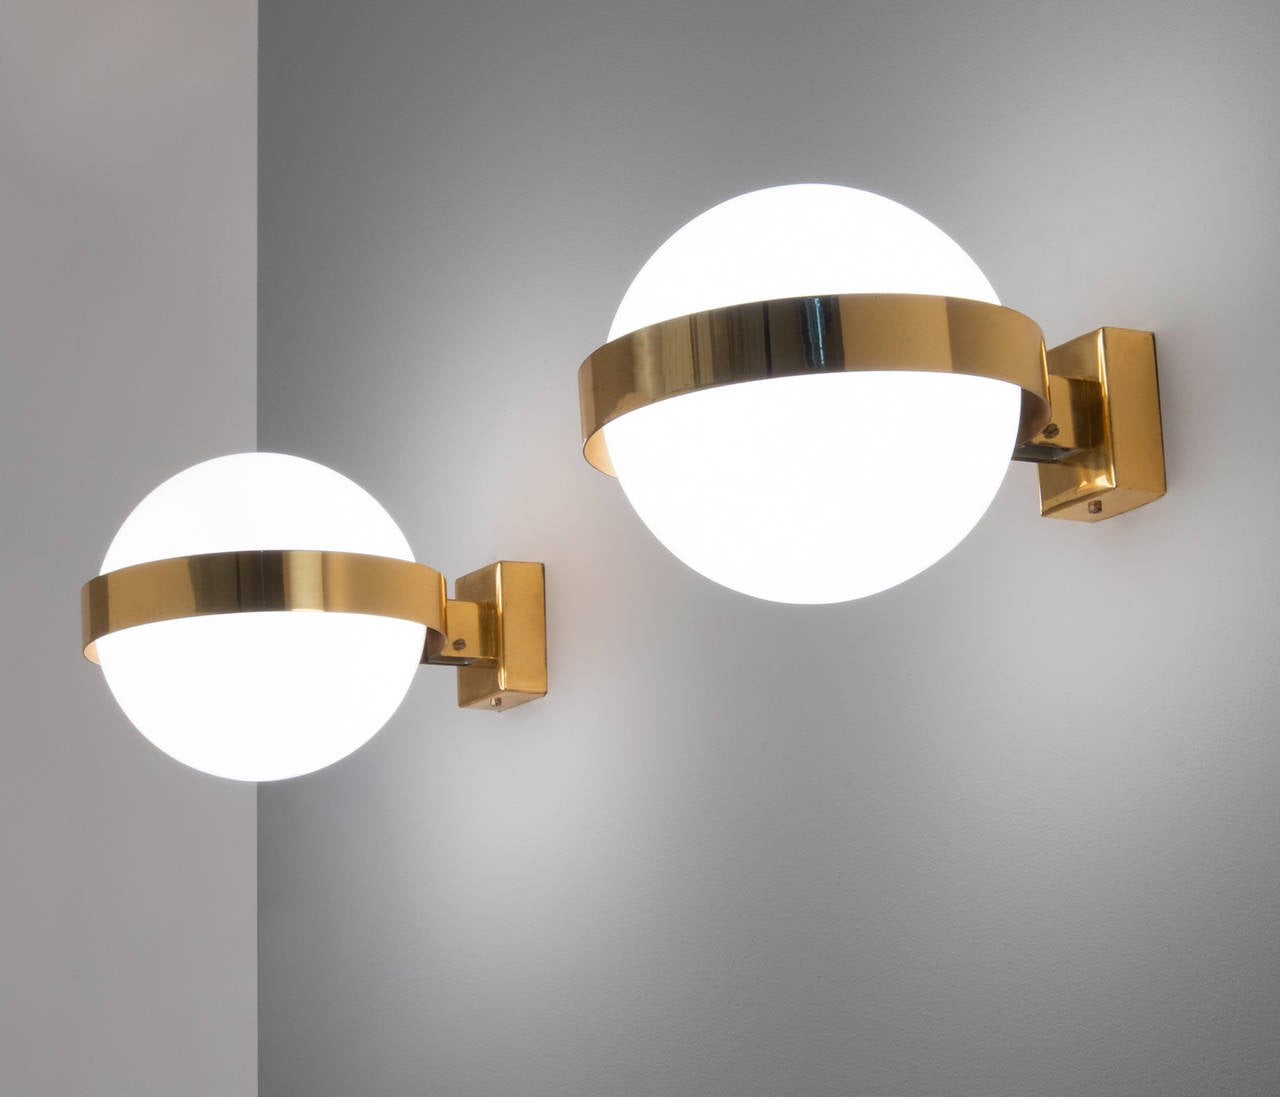 Extra Large Wall Lights : Extra Large Wall Lights in Brass with Floating Globes For Sale at 1stdibs